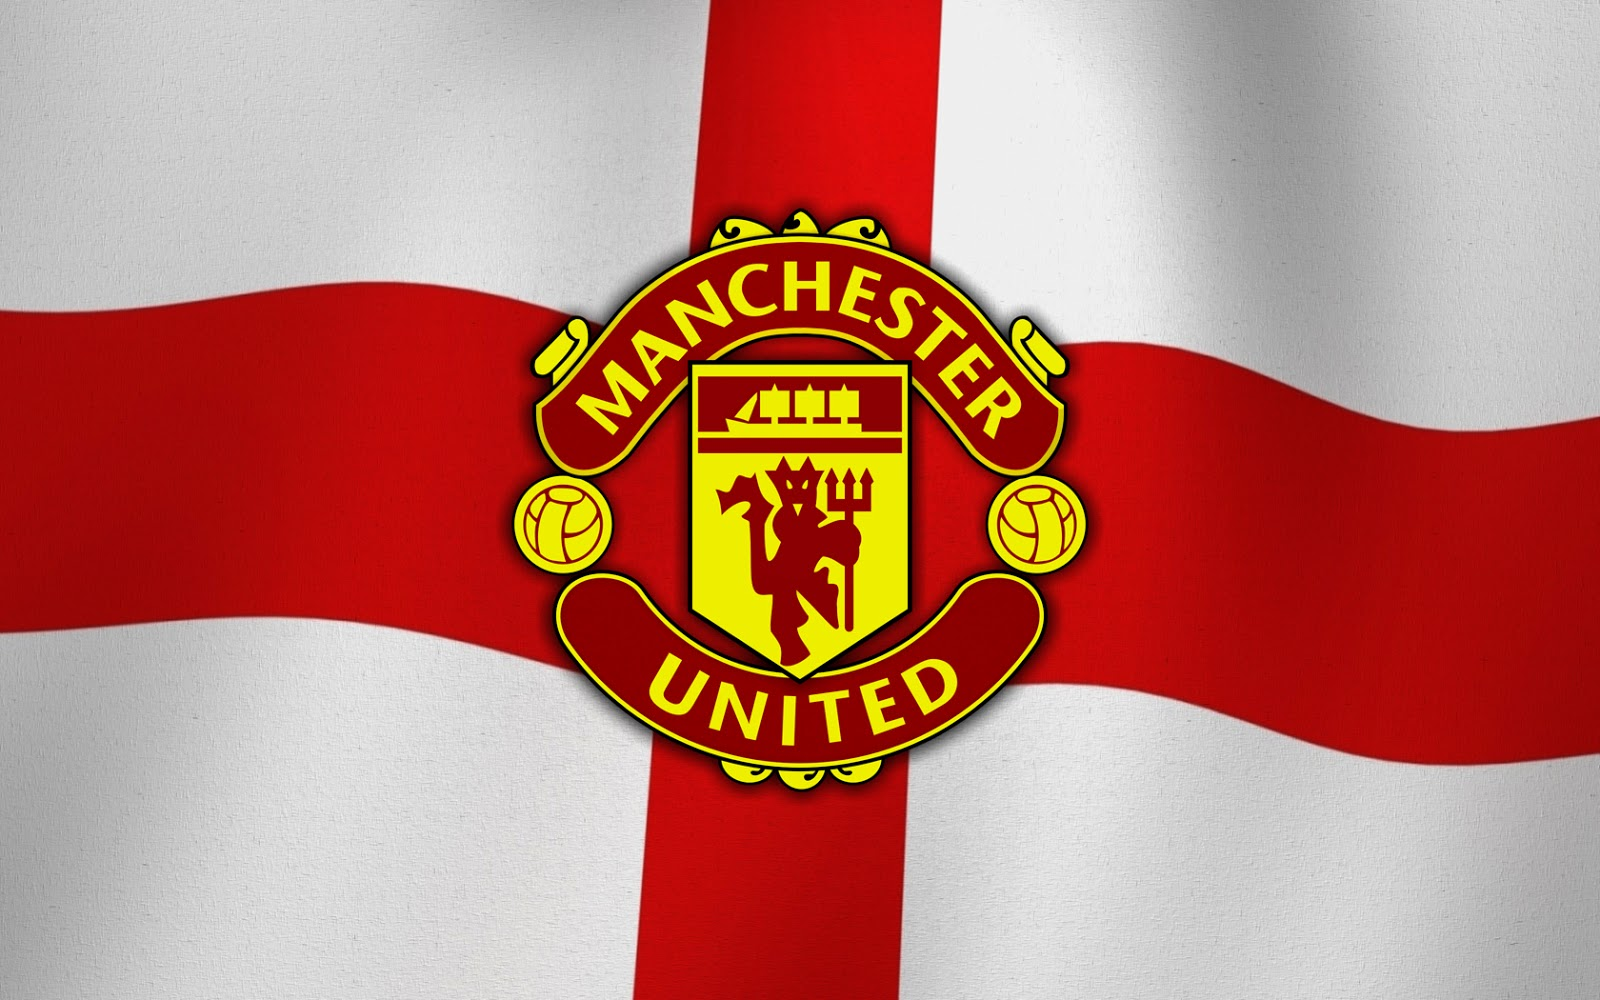 Manchester united logo hd wallpapers 20132014 all about football manchester united logo hd wallpapers 20132014 all about football voltagebd Choice Image